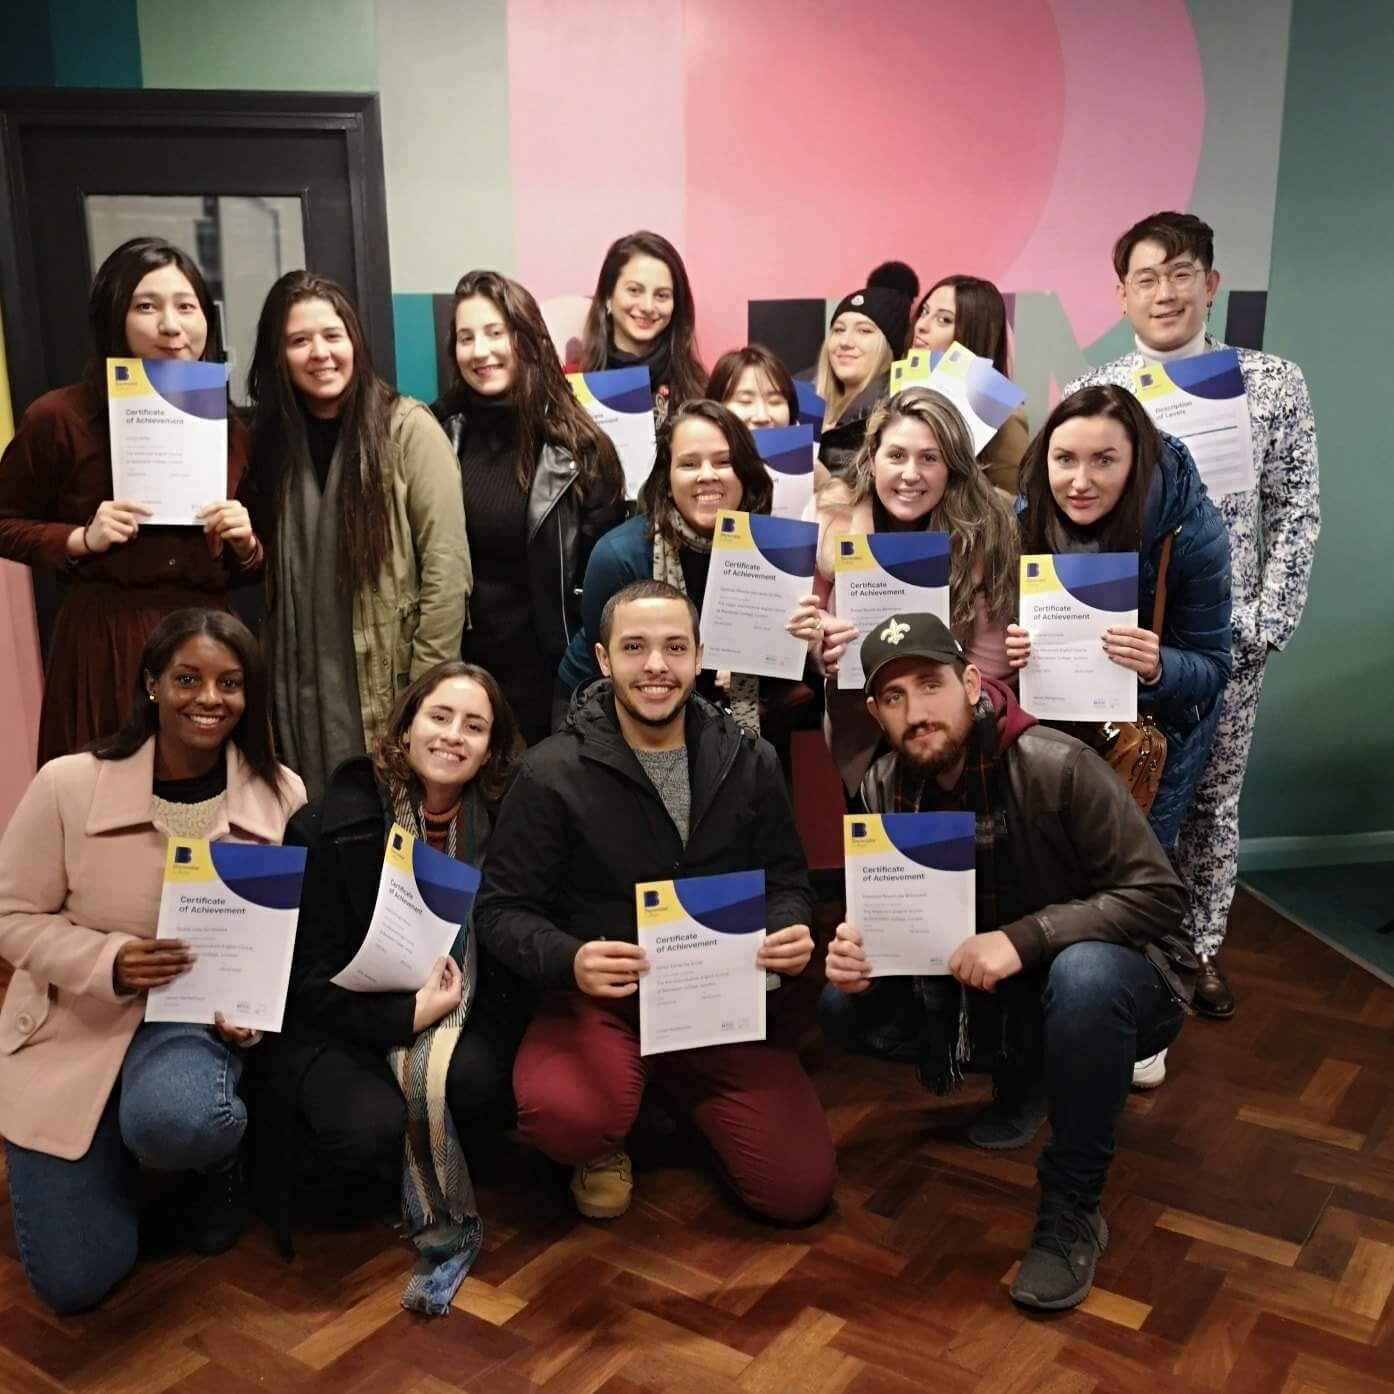 bayswater college londres etudiant diplome